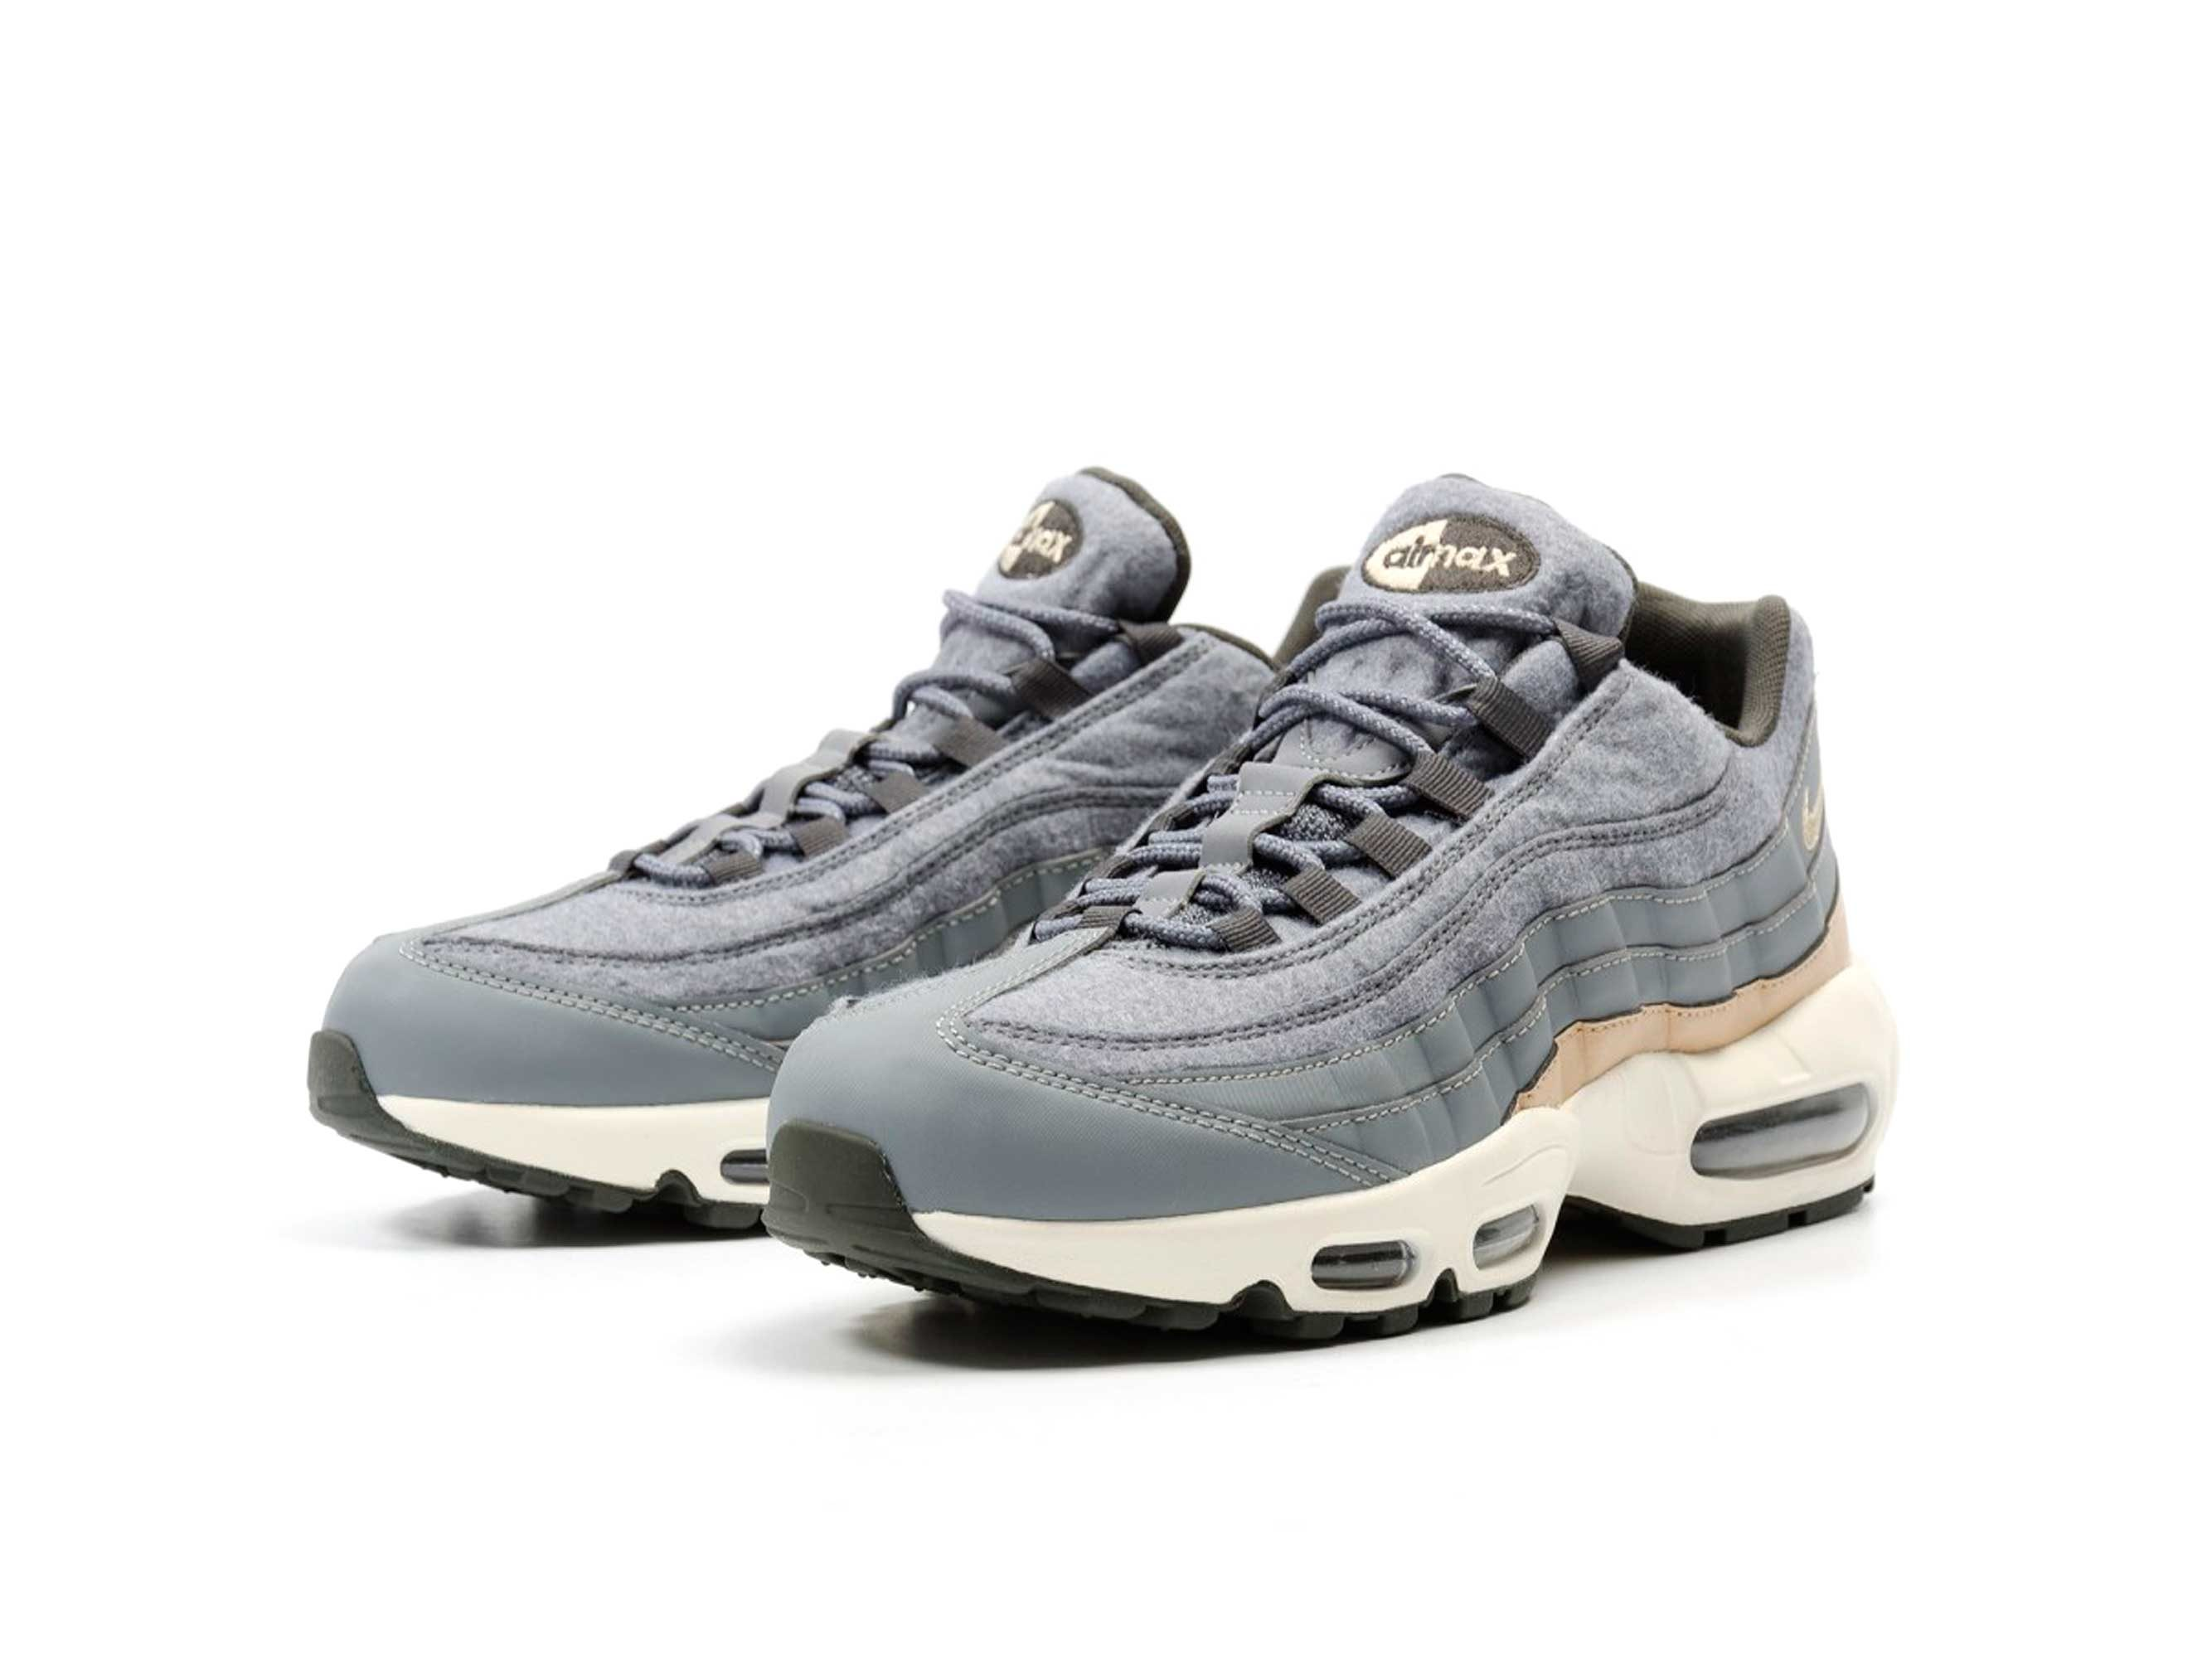 nike air max 95 premium cool grey 538416-009 купить